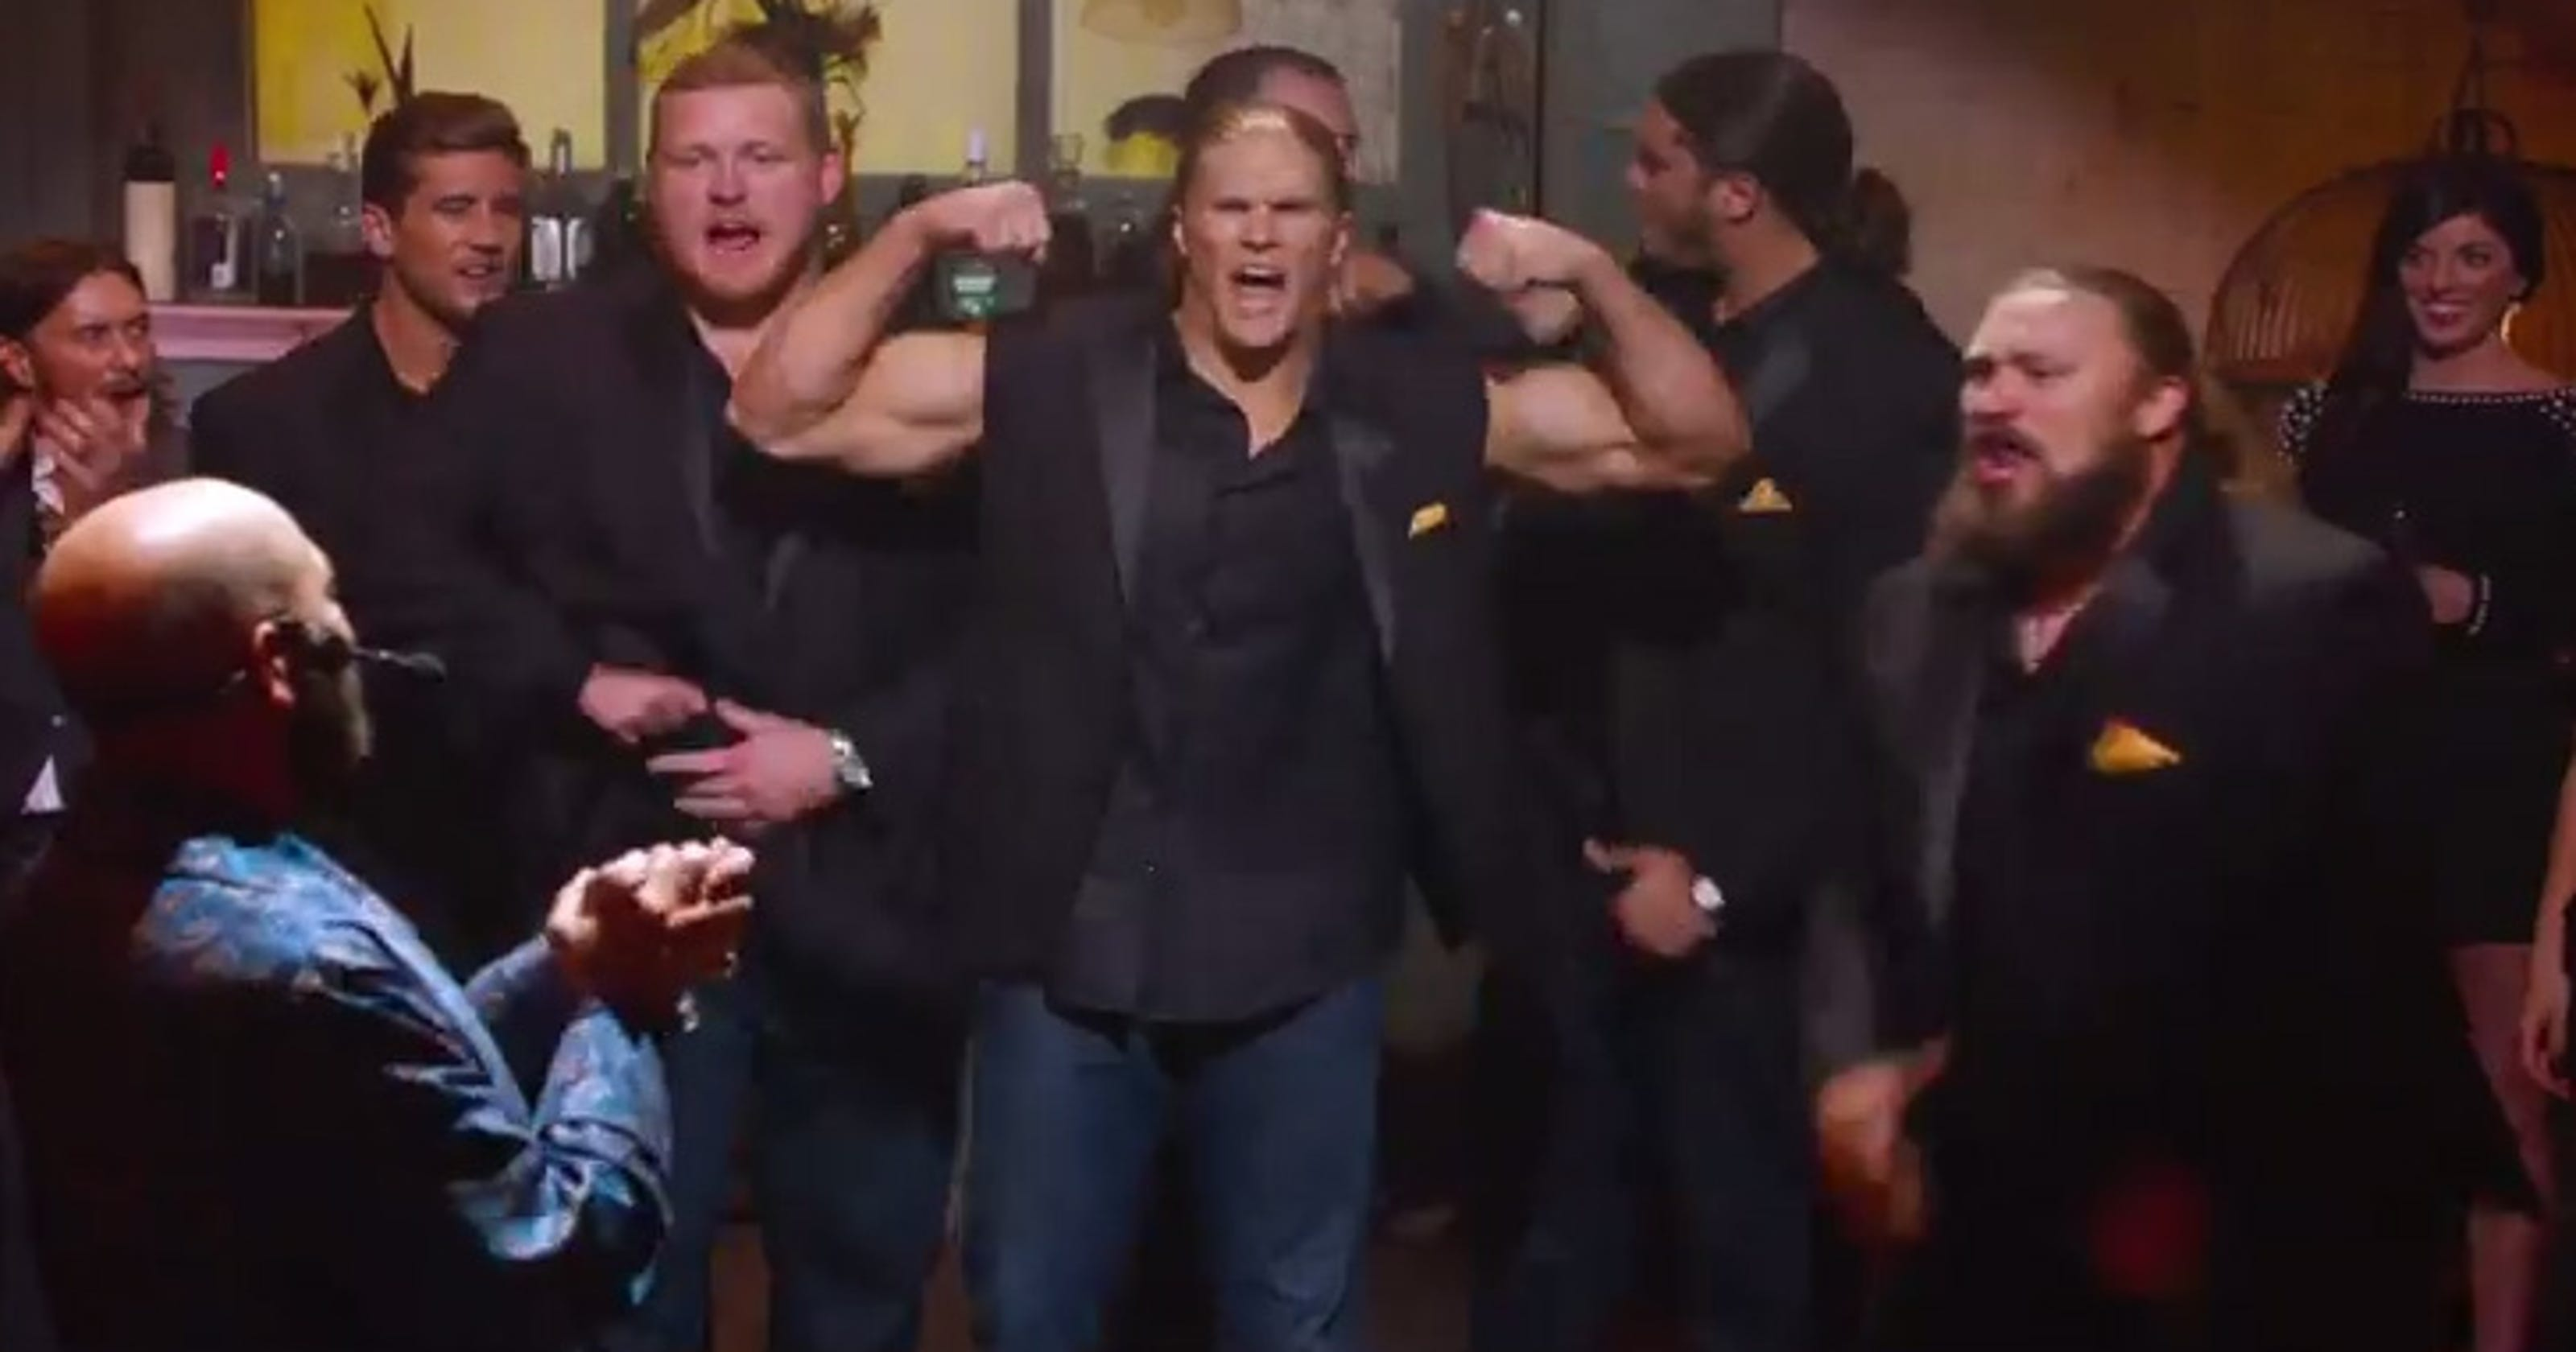 5 Packers pump up 'Pitch Perfect 2' trailer